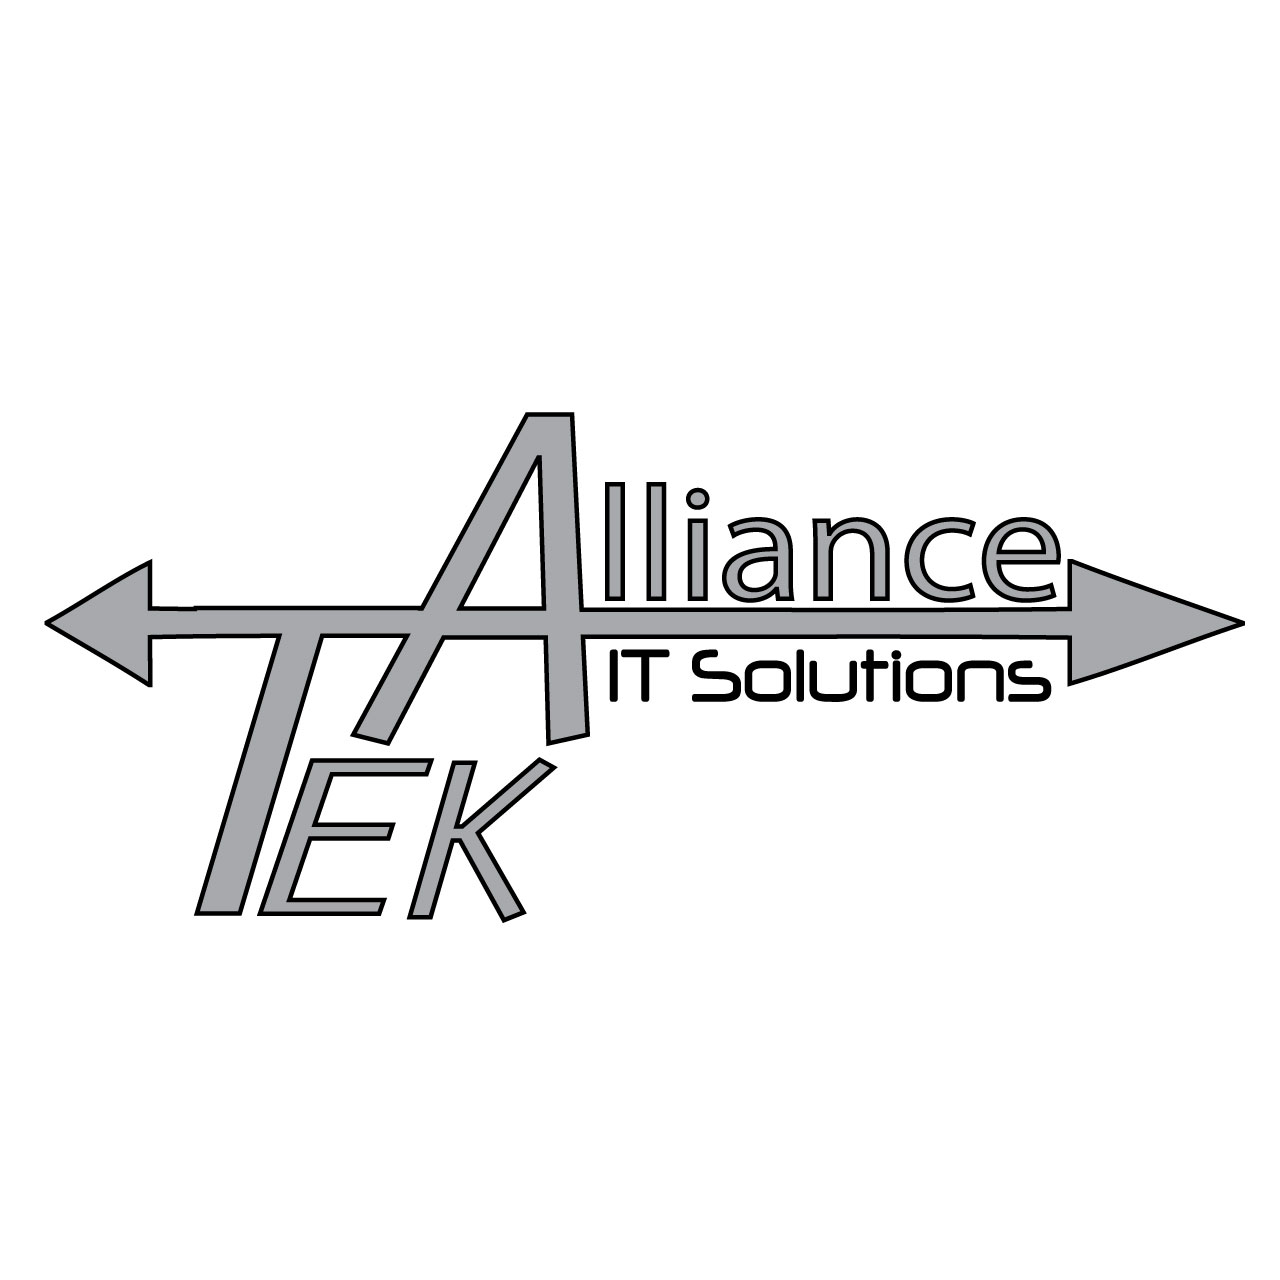 Logo Design by Ethan Waller - Entry No. 12 in the Logo Design Contest TEK Alliance.